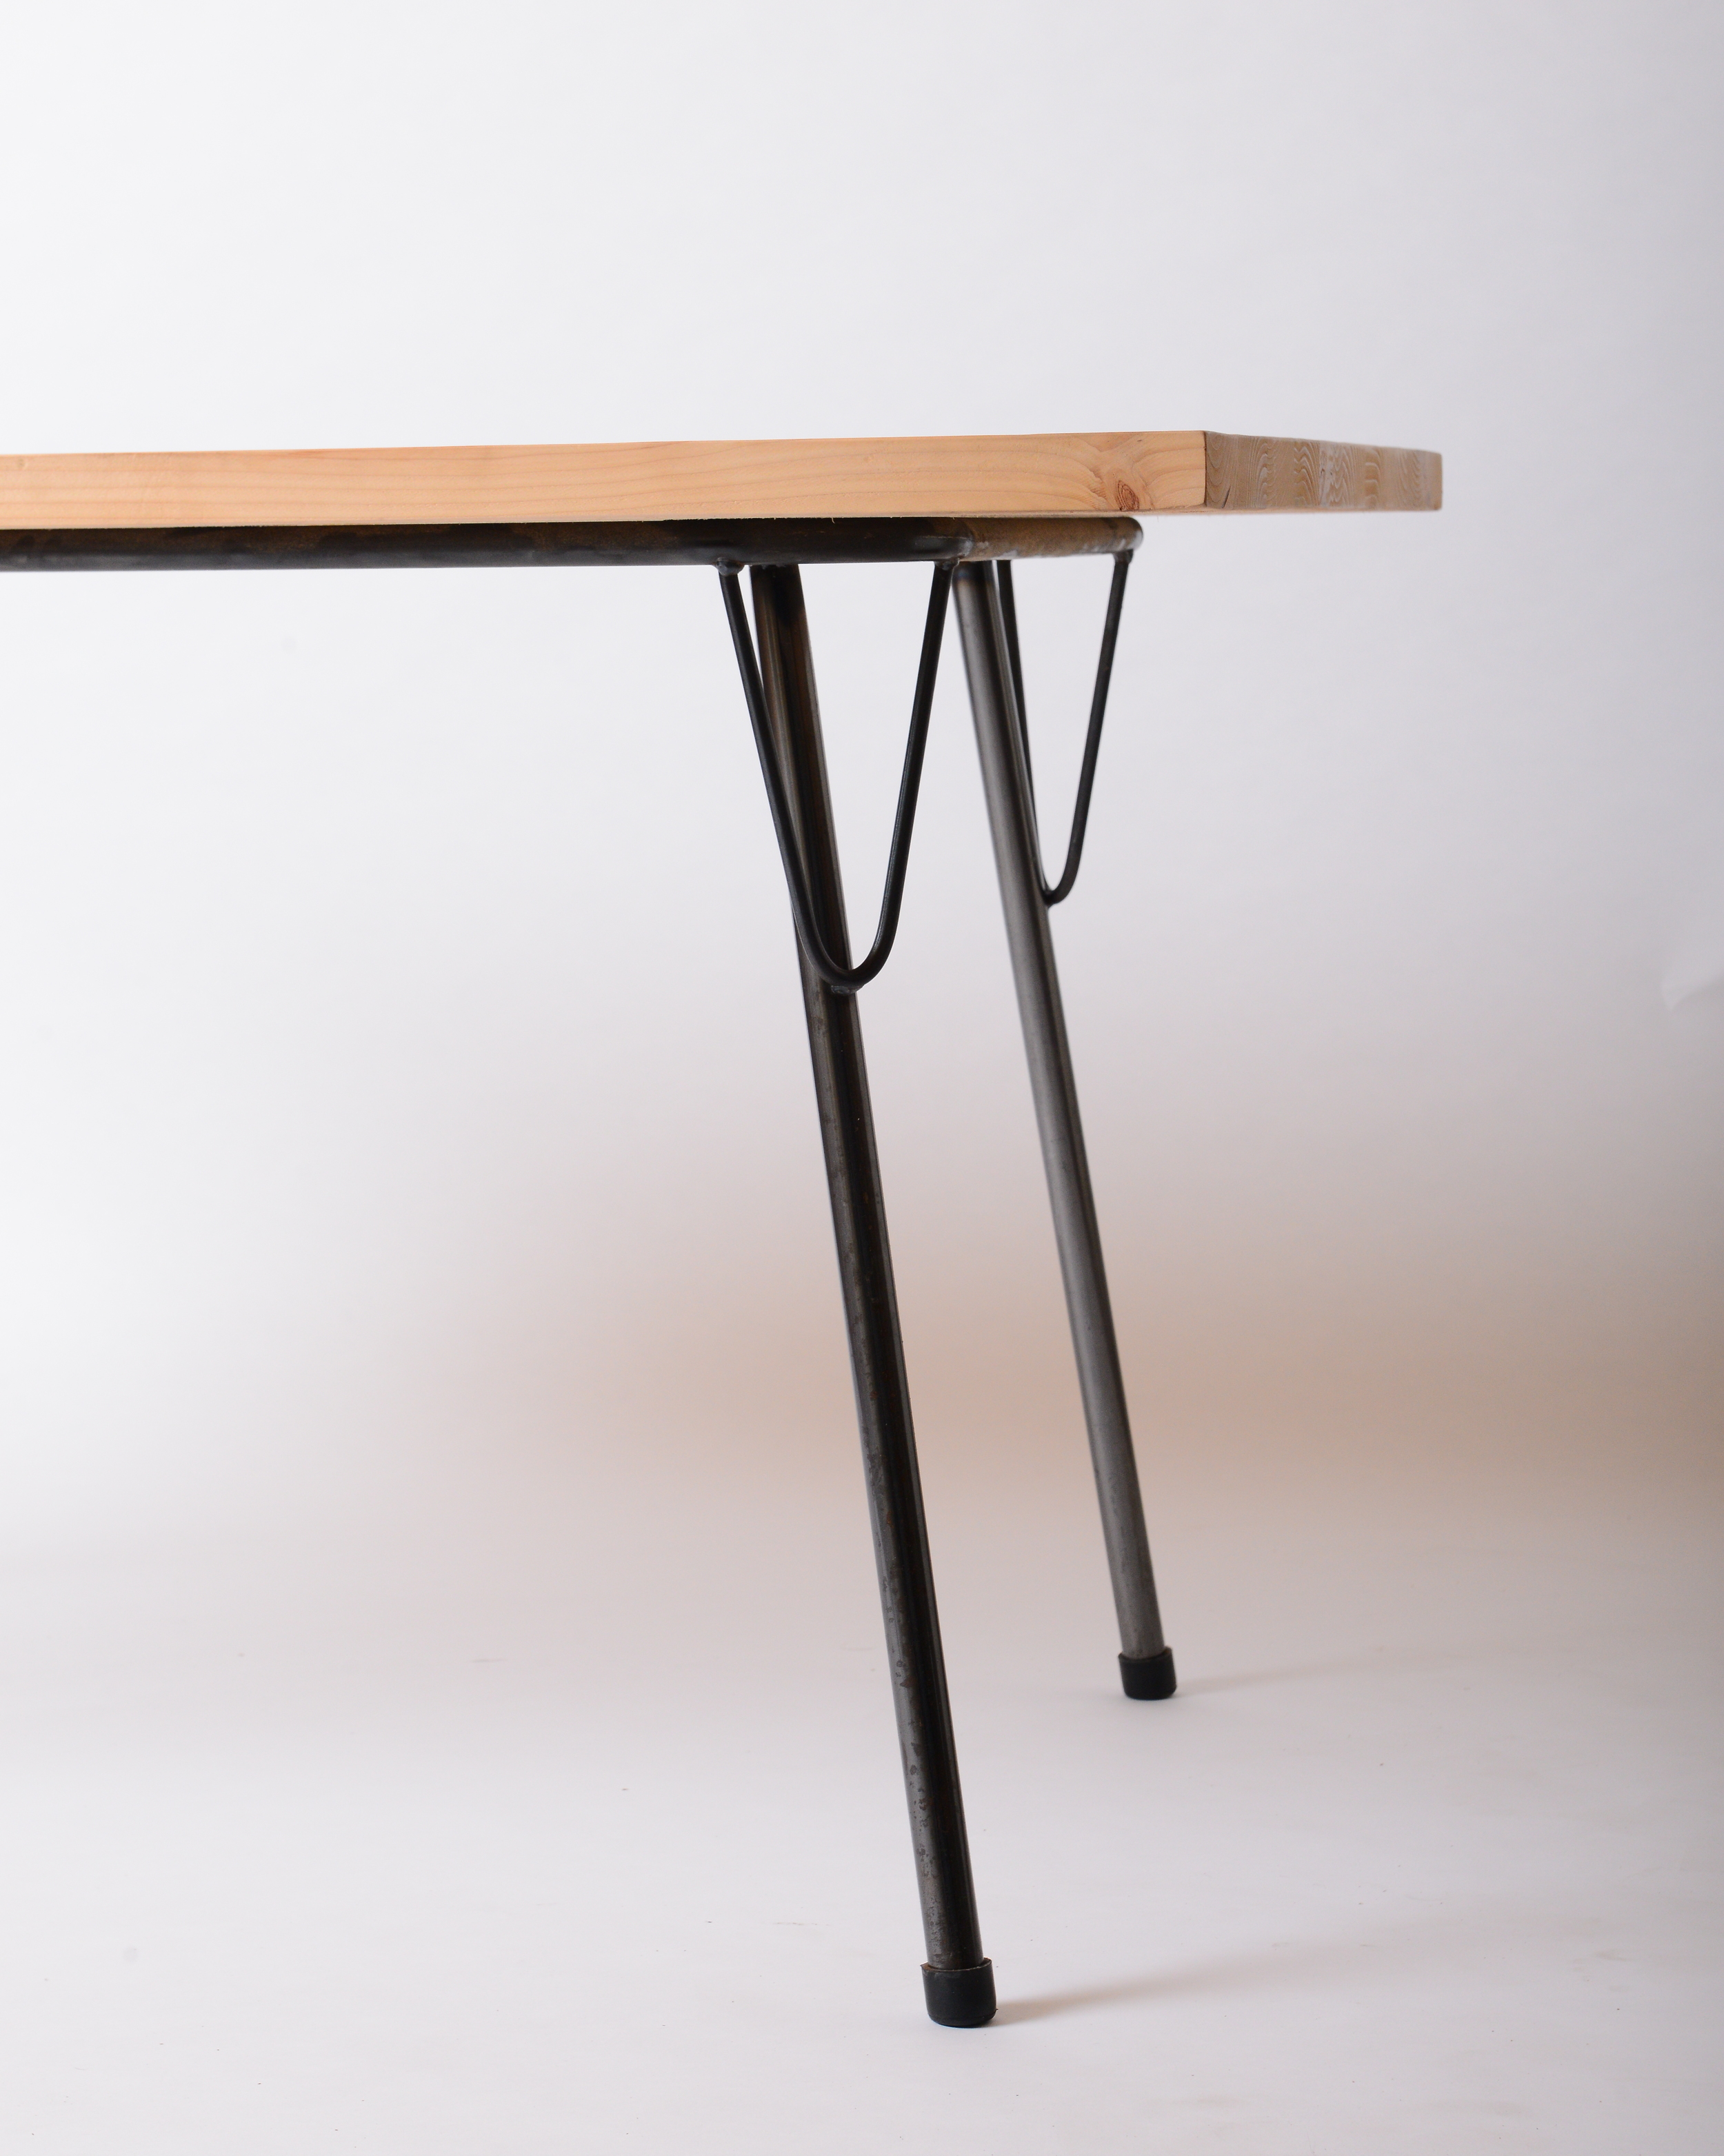 F-03 Journal dining table